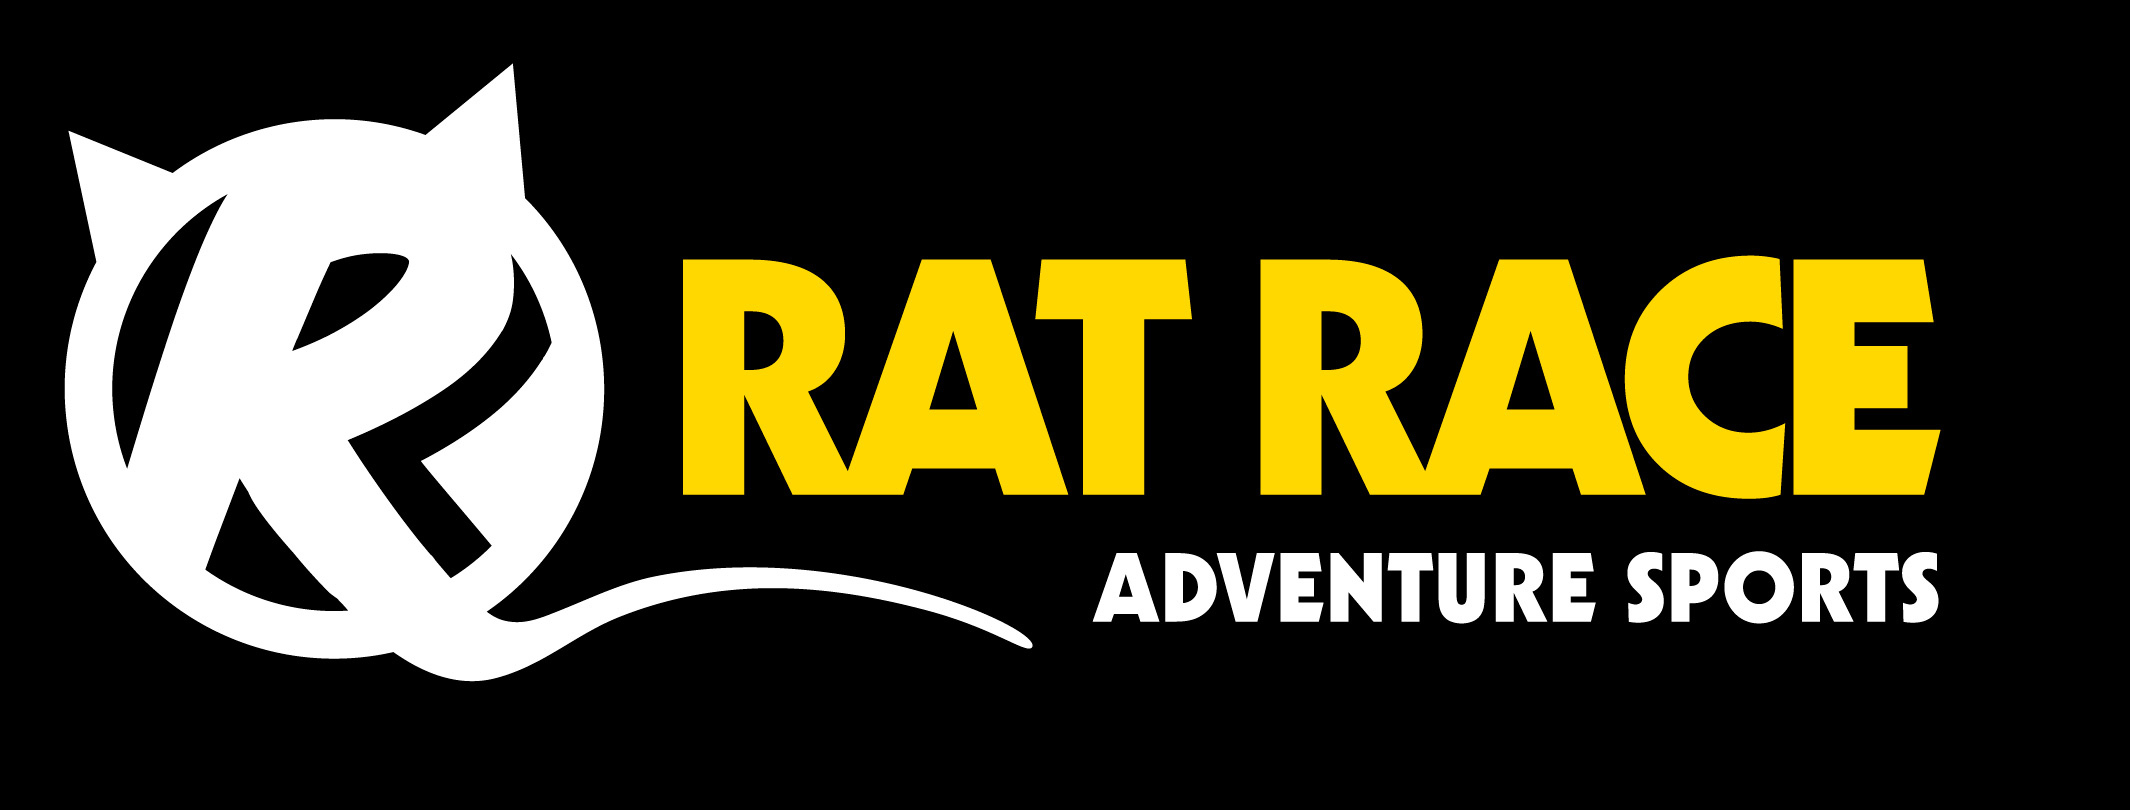 Rat Race logo